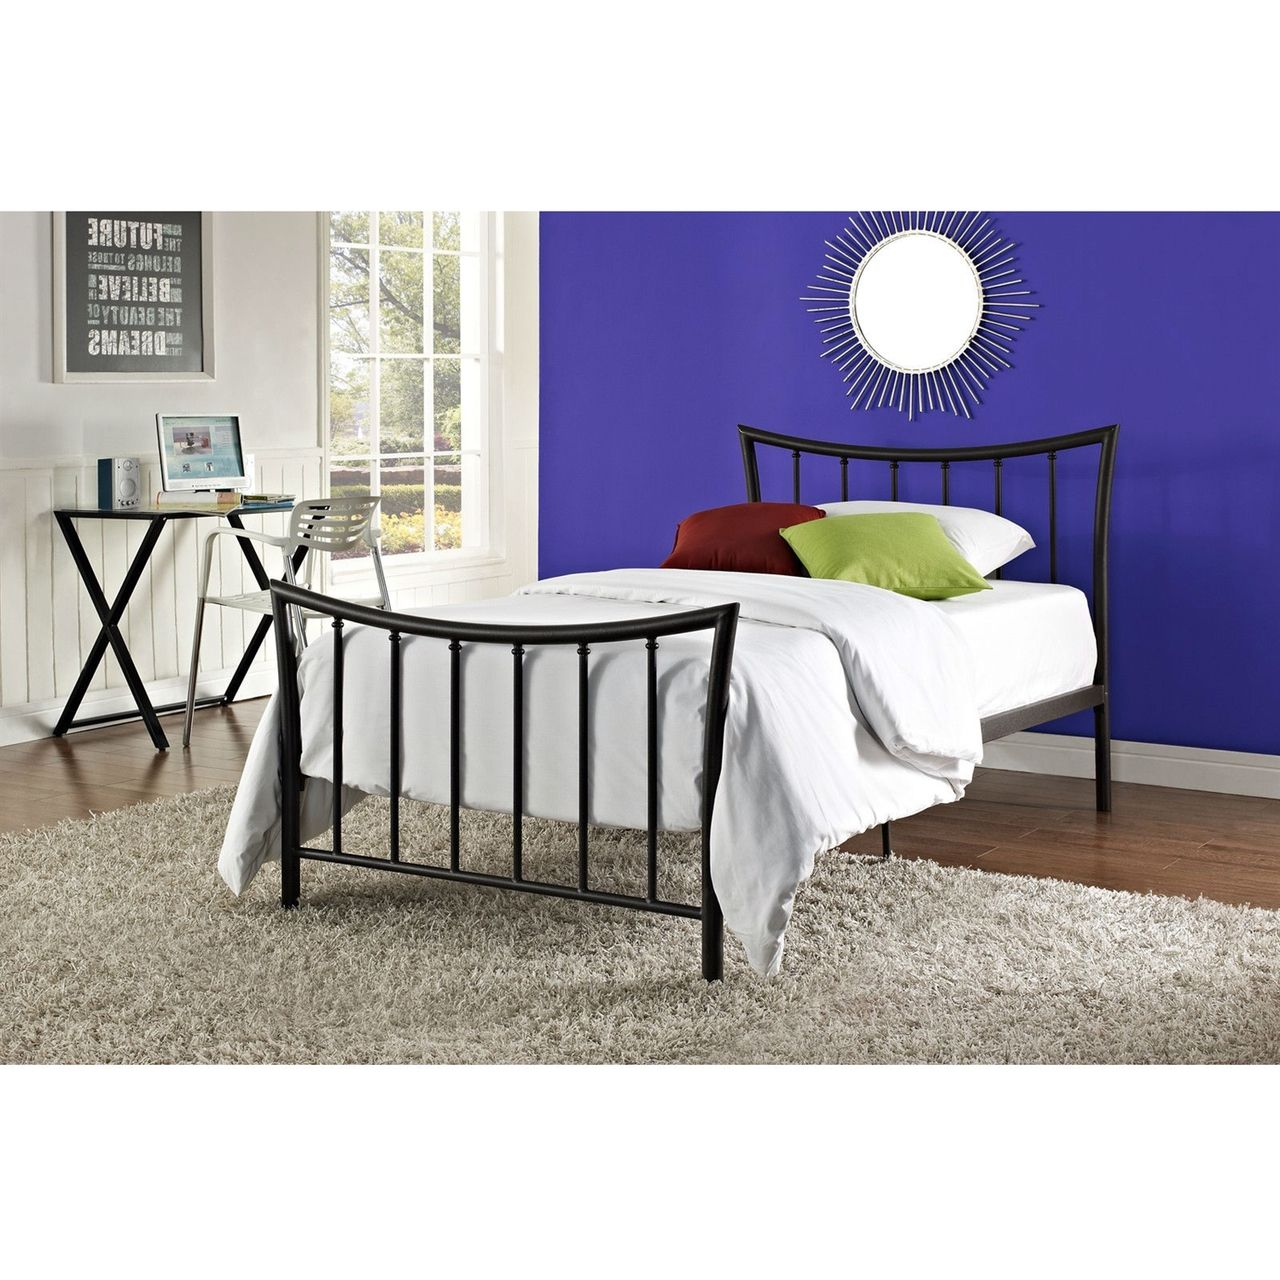 Twin Bronze Metal Platform Bed Frame with Headboard and